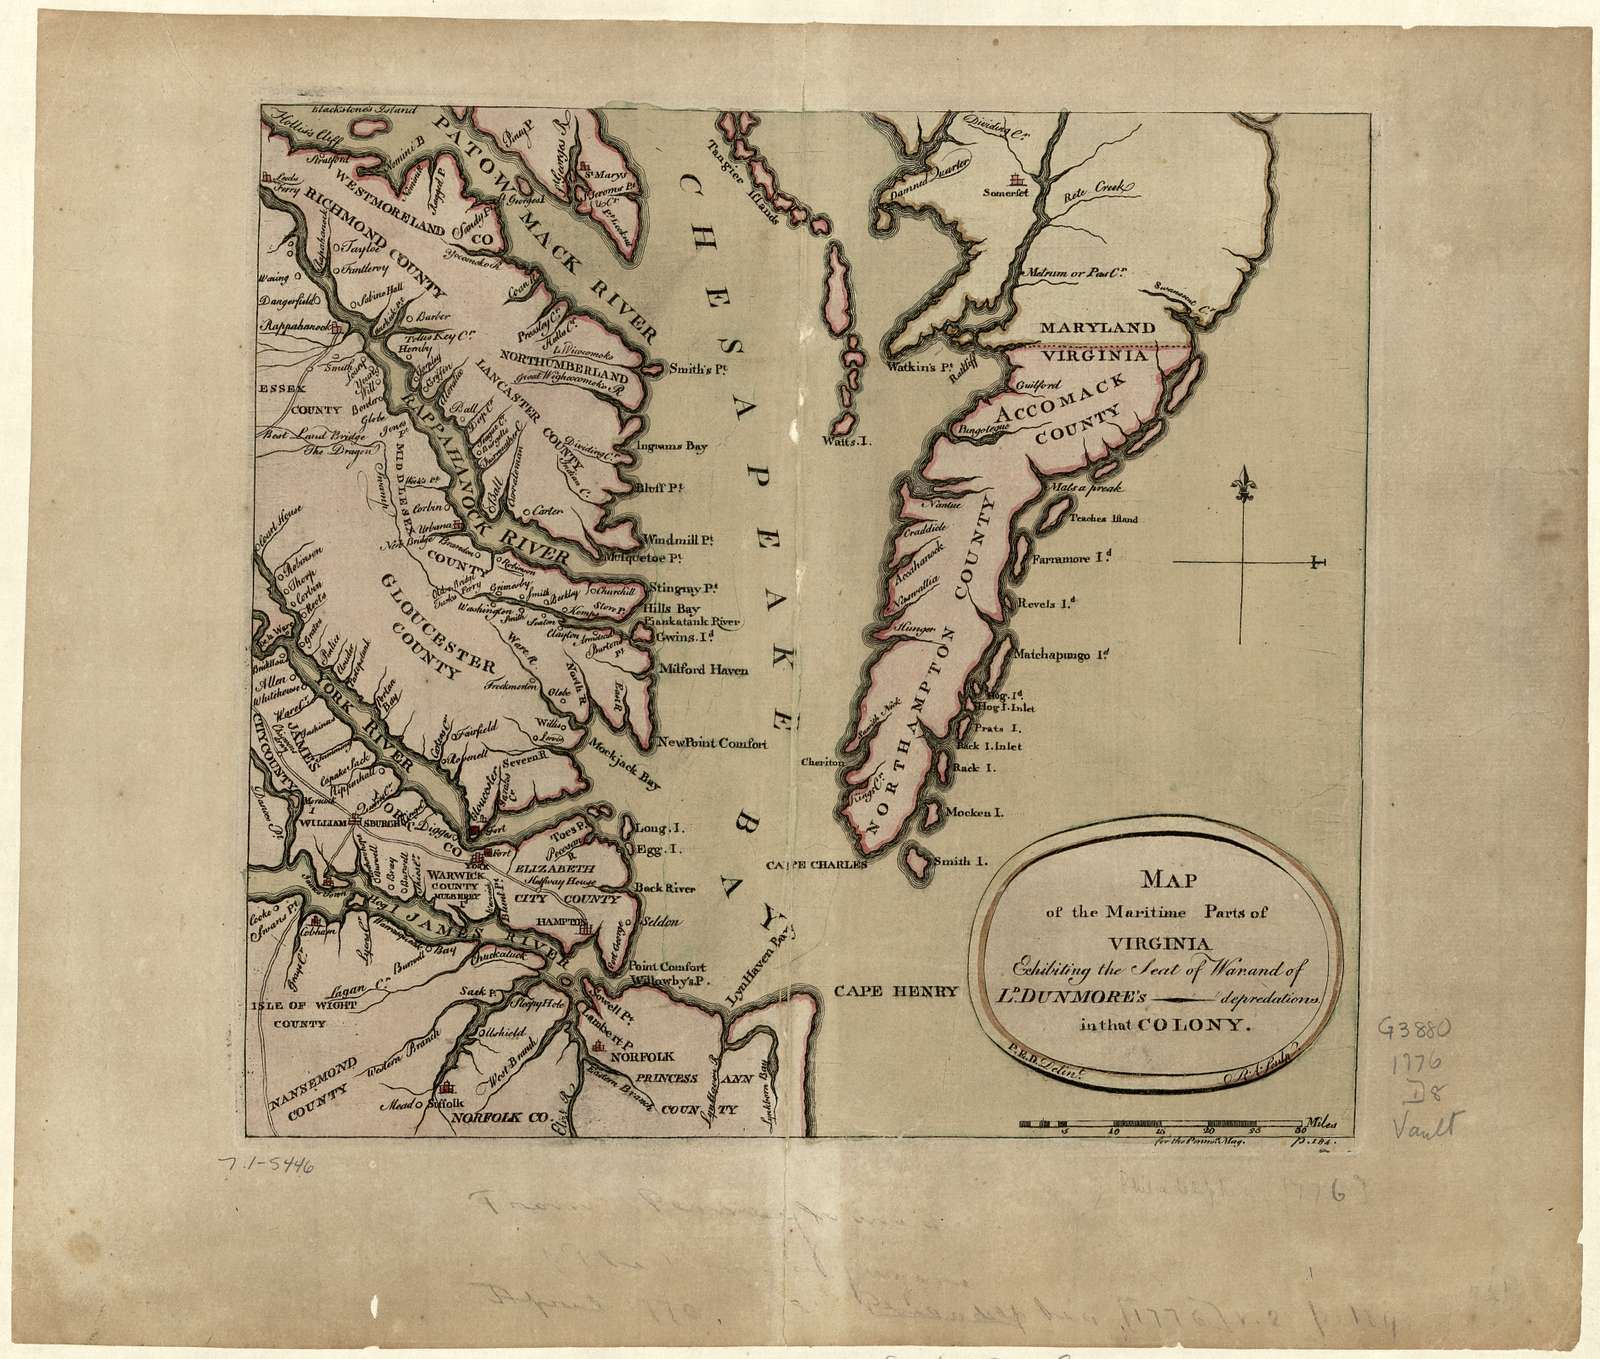 Map of the maritime parts of Virginia exhibiting the seat of war and of Ld. Dunmore's depredations in that colony.